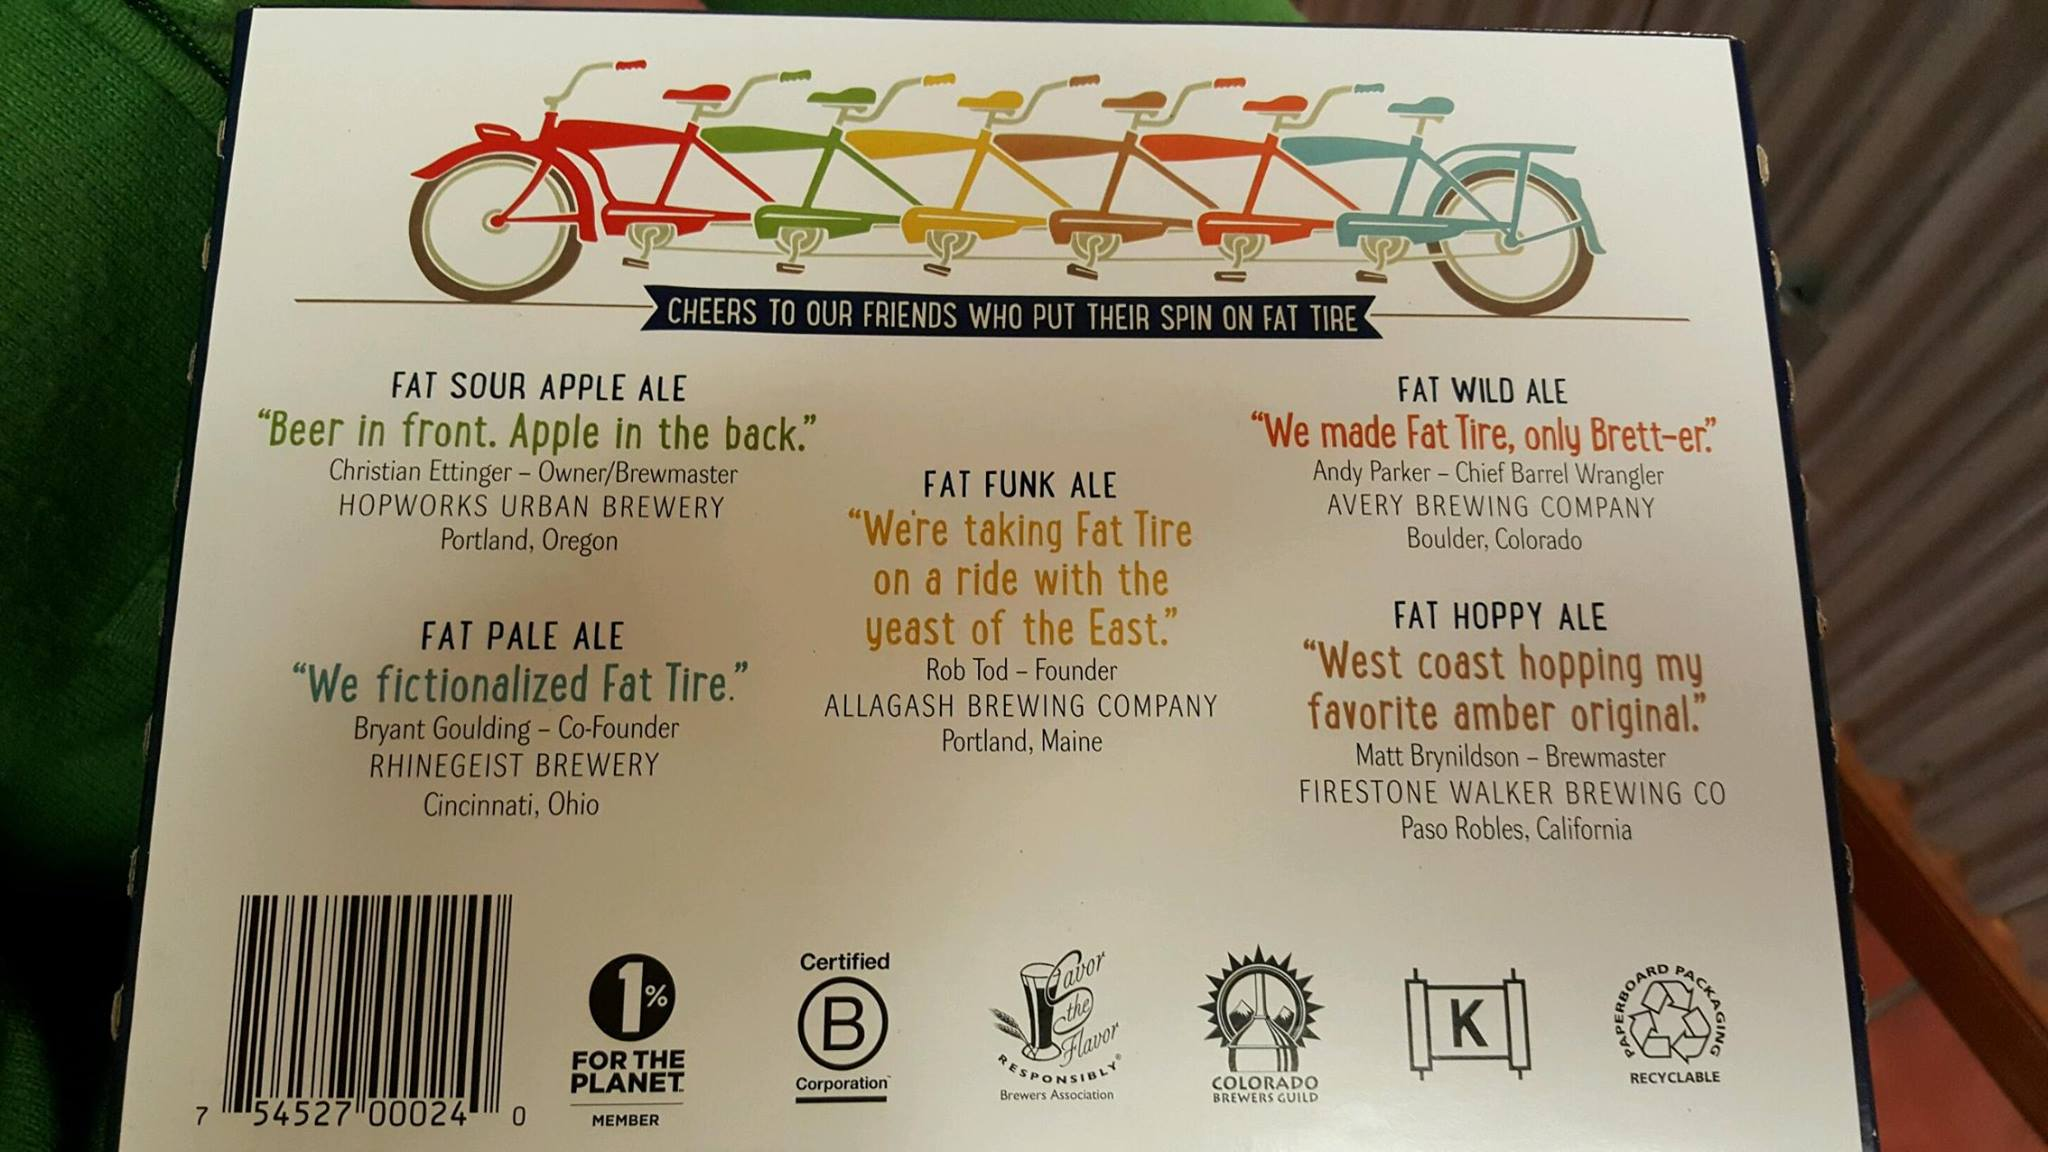 Beer descriptions of Fat Tire and Friends from New Belgium Brewing. (image courtesy of Hopworks Urban Brewery Facebook Page)